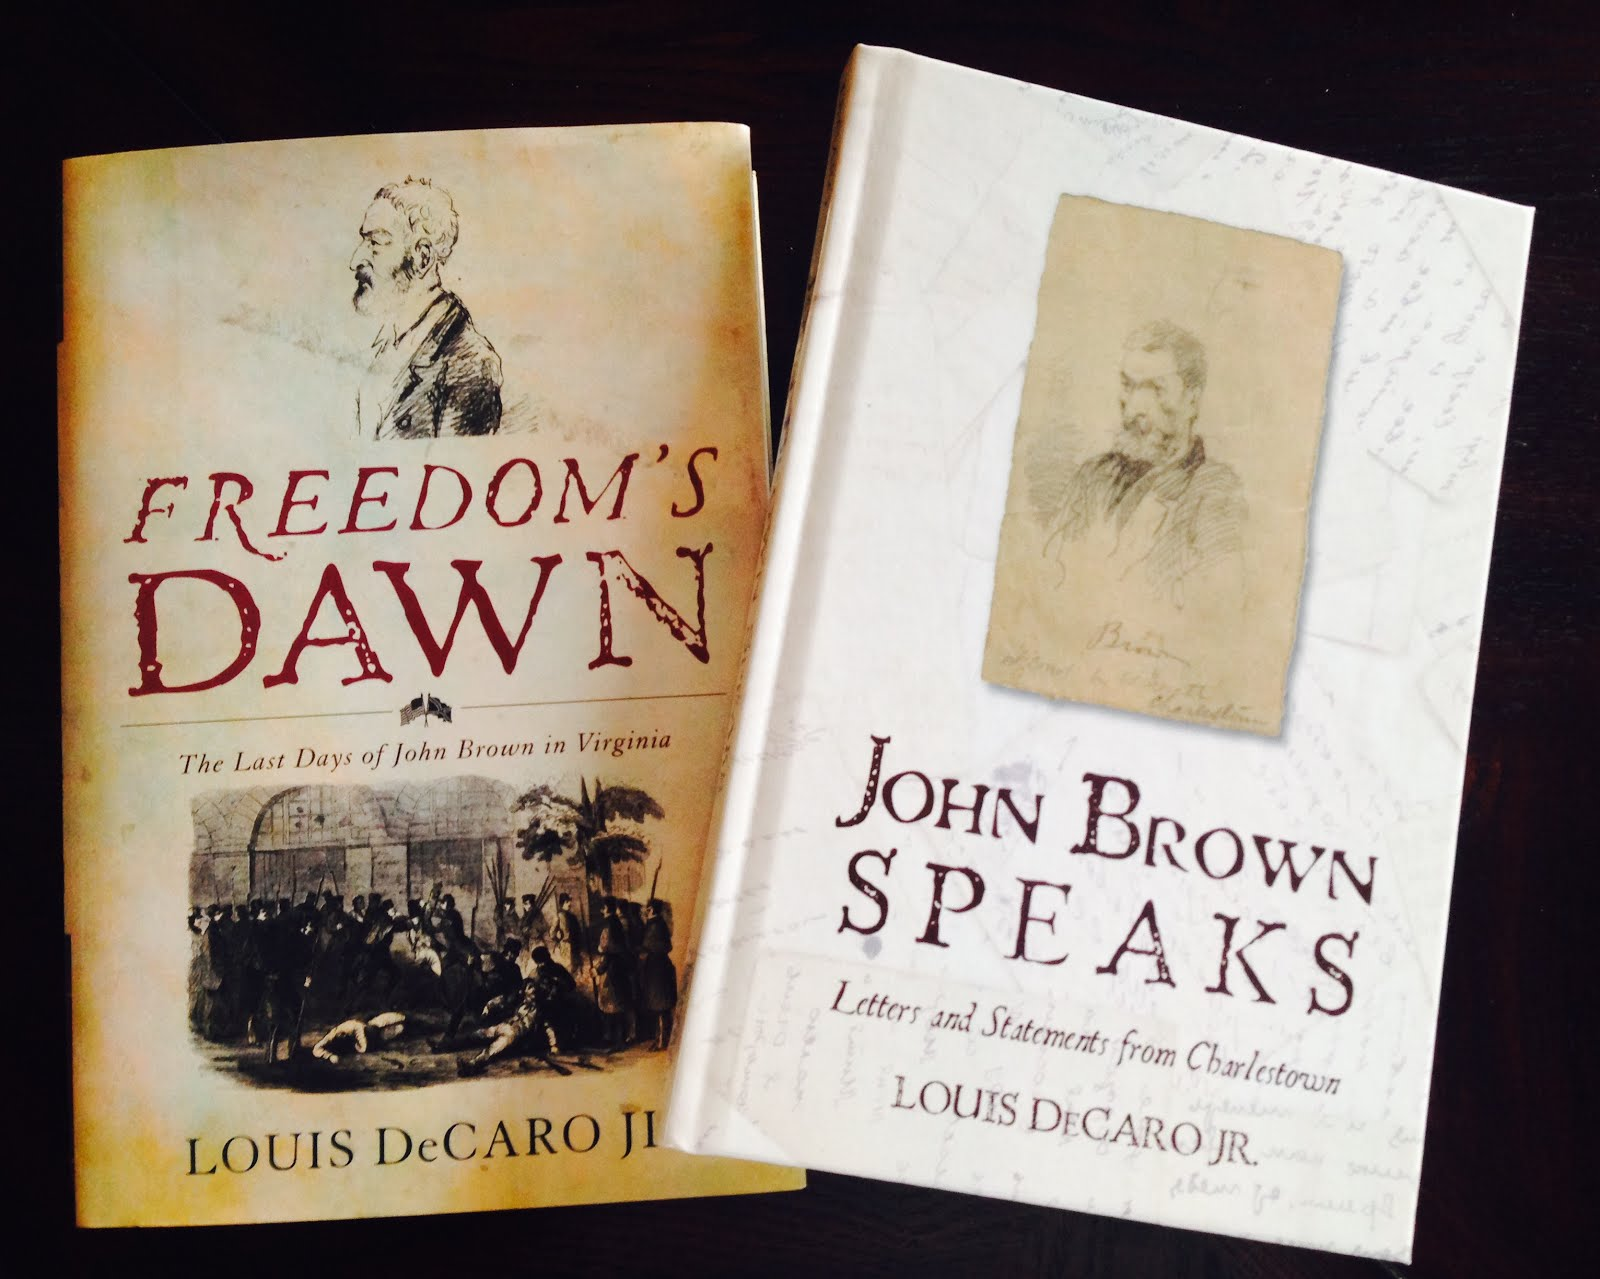 <b><i>Freedom's Dawn</i> and <i><b>John Brown Speaks</b></i></b>